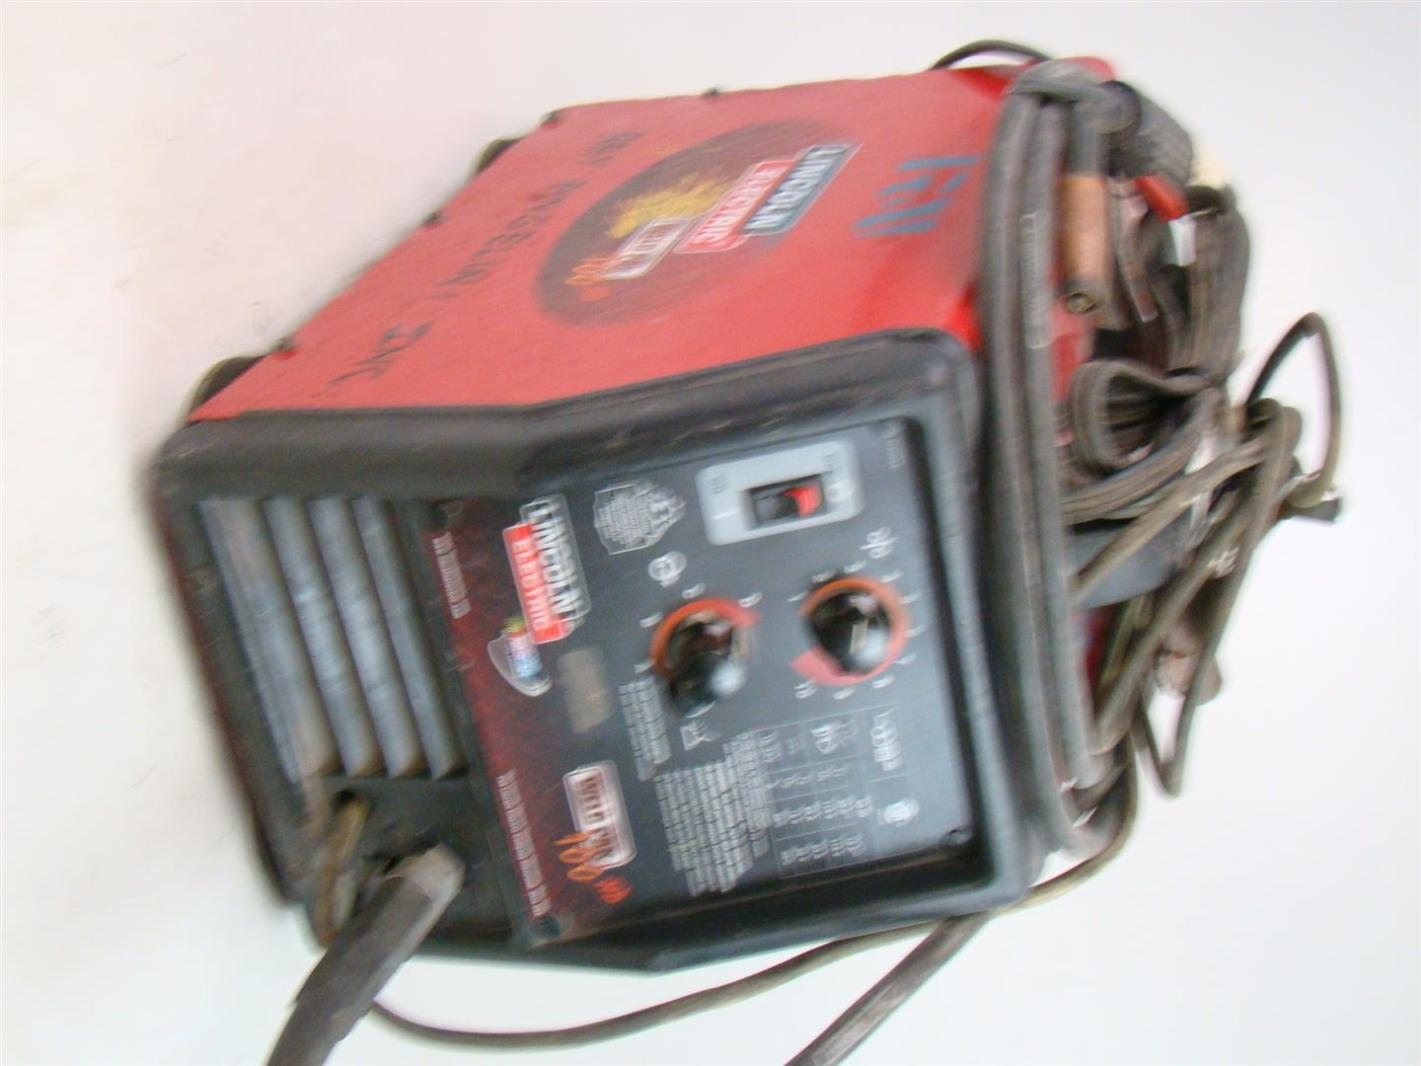 Lincoln Weld Pak Hd Parts : lincoln, parts, Lincoln, Electric, 100HD, Welder,, 10965